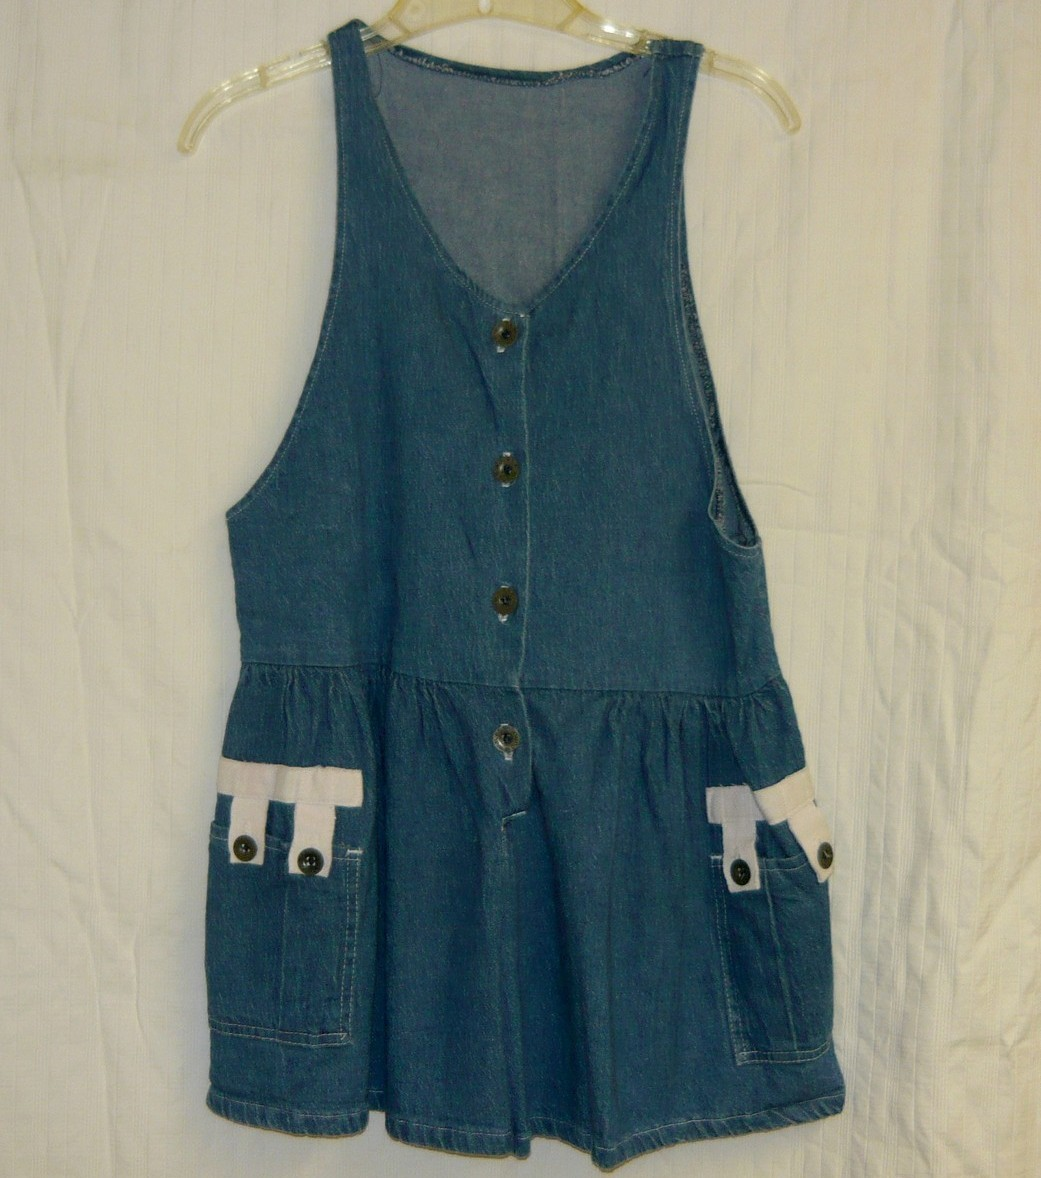 Vintage denim playsuit sz. M - $10.00